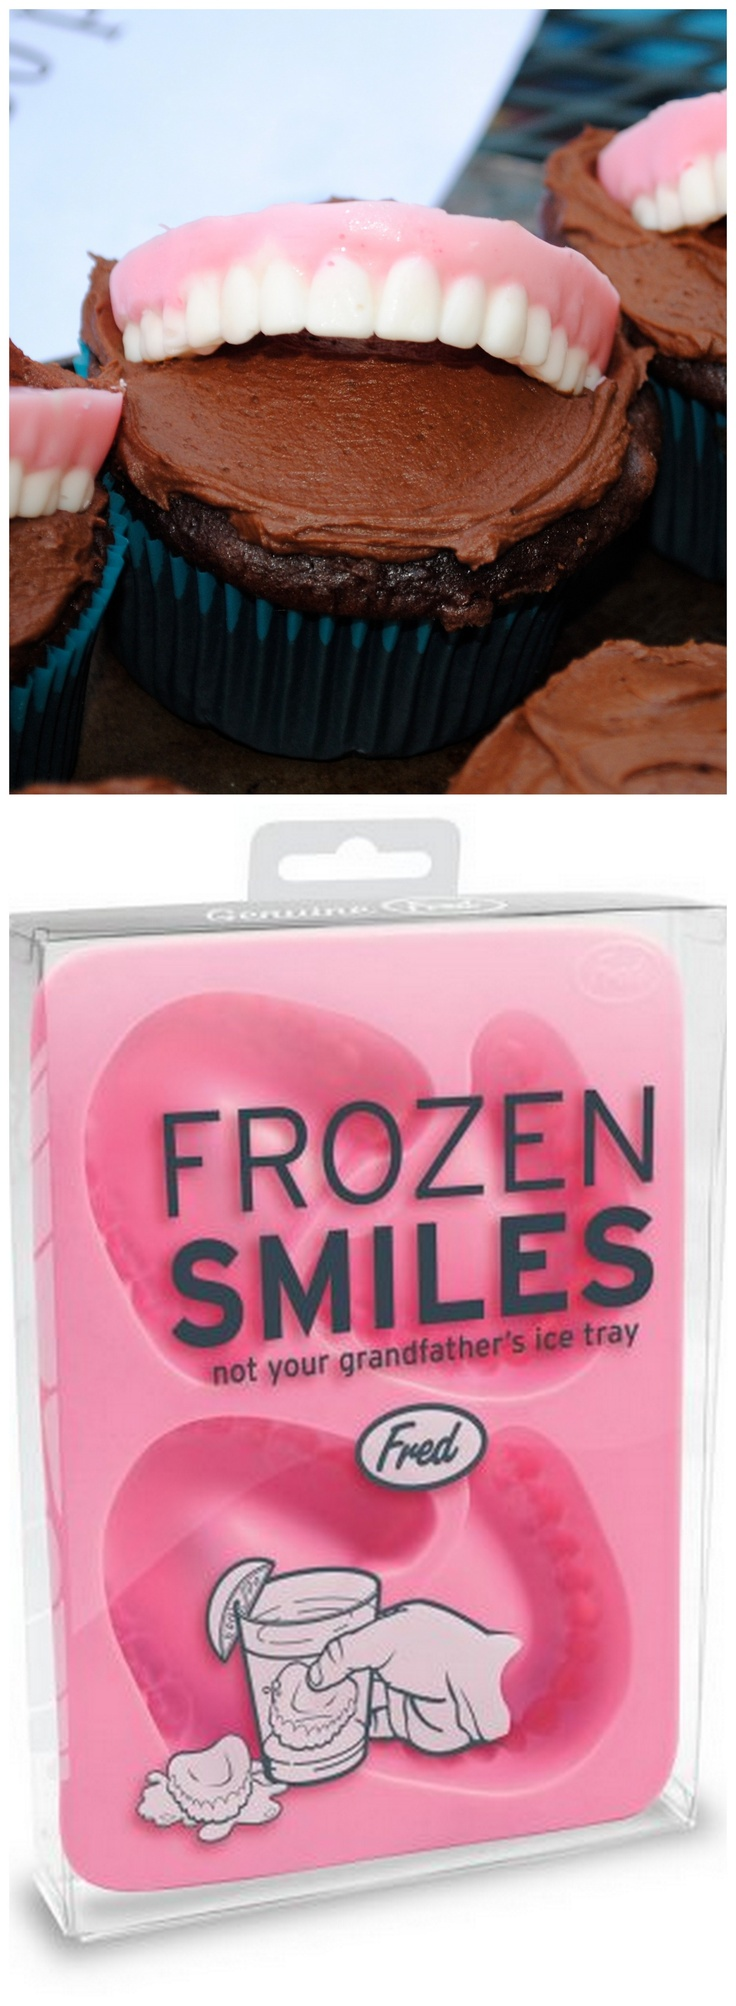 """Dentist's denture cupcake--Using Fred's """"Frozen Smiles"""" ice mold, fill the teeth with white chocolate (a paint brush helps with the details).  Let set, and then fill with pink chocolate. Perfect chocolate """"denture"""" cupcake topper for any dentist!"""